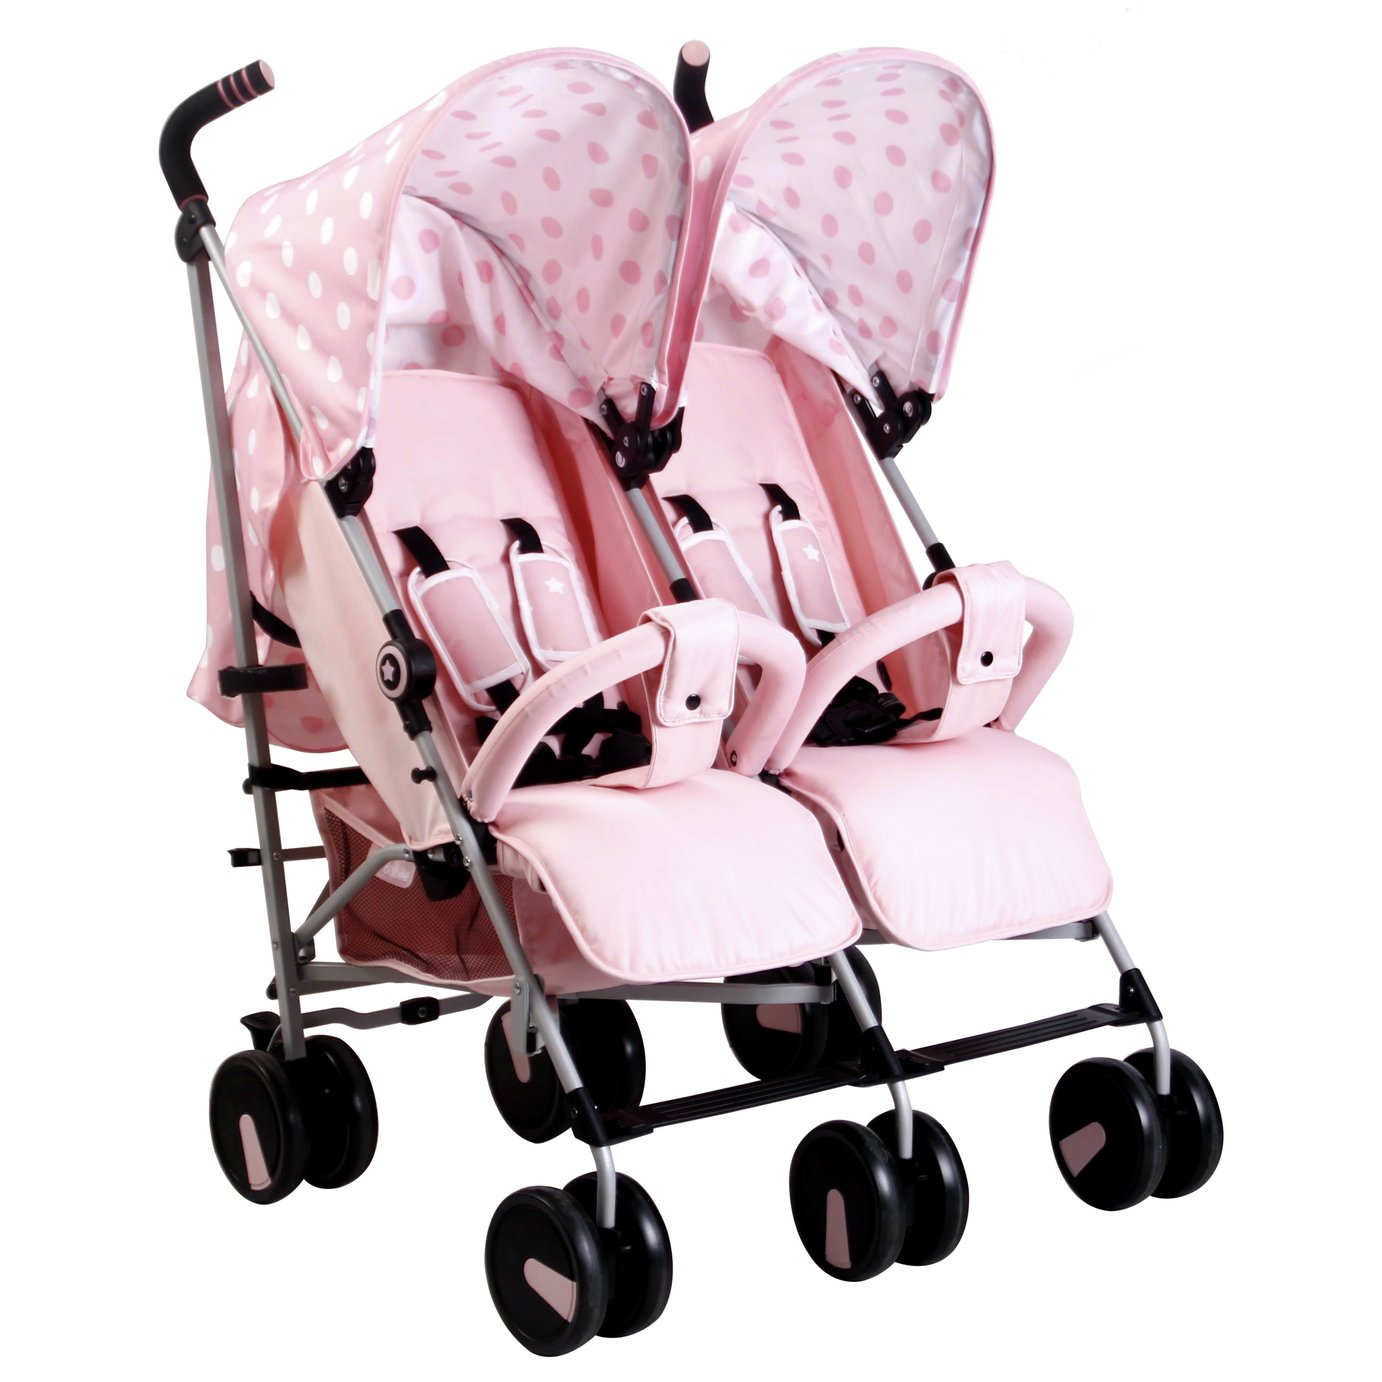 My Babiie MB22 Polka Dot Double Pushchair - Pink